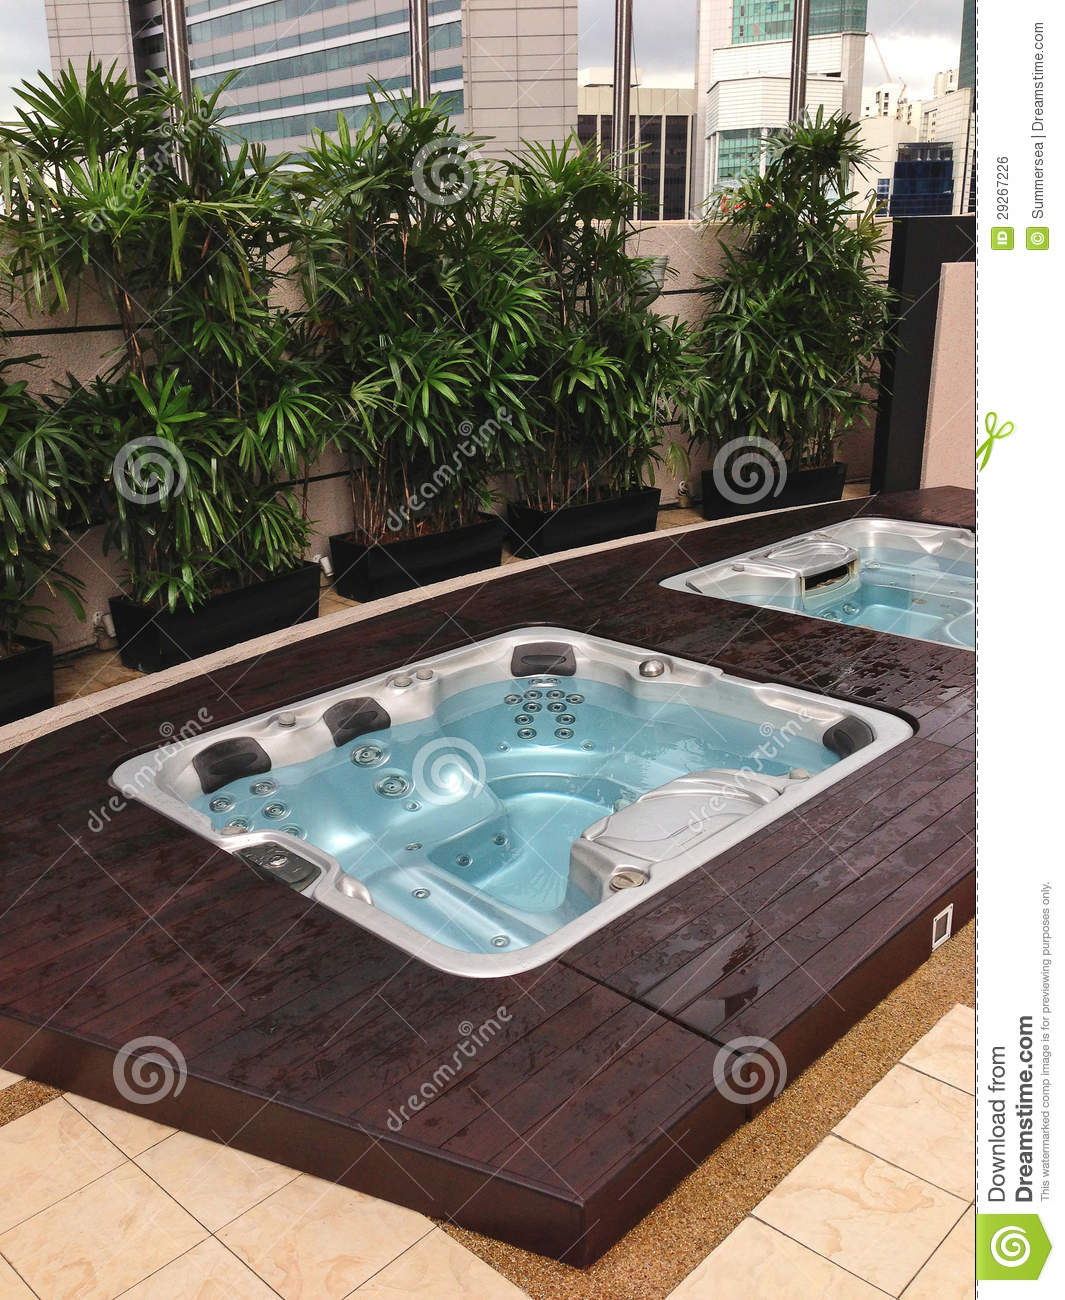 Outdoor jacuzzi in the city royalty free stock image for Jacuzzi enterre exterieur